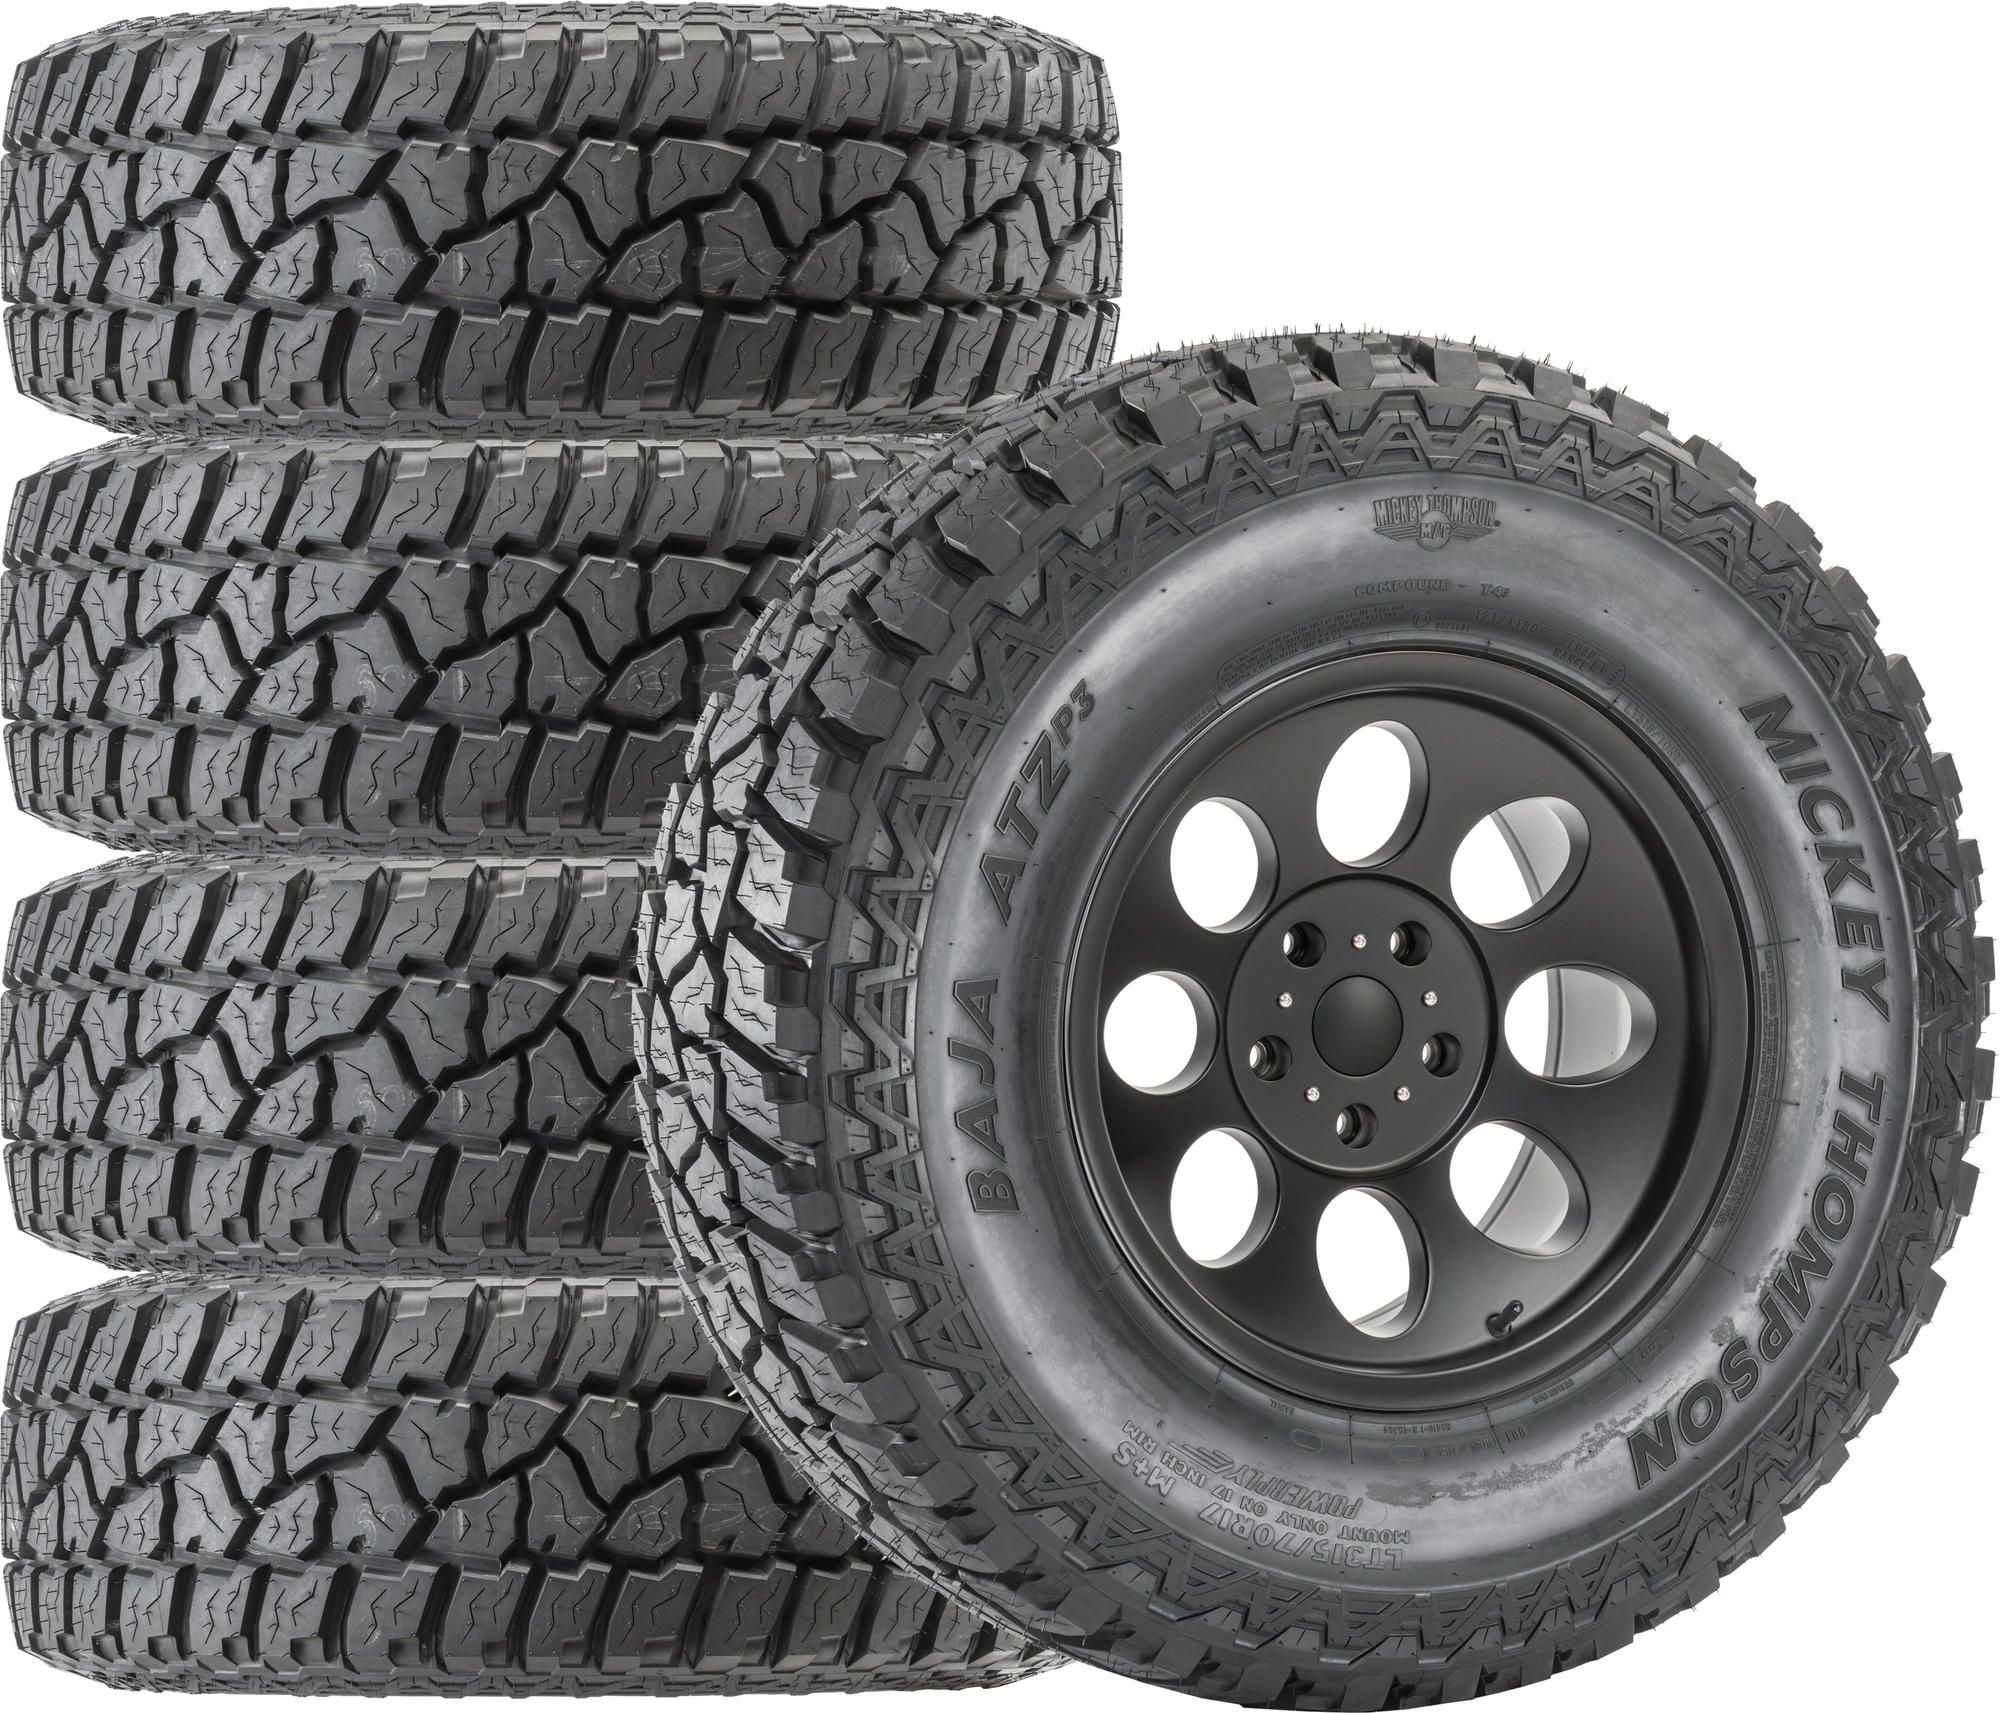 Jeep Wheel Tire Packages Quadratec >> Quadratec And Mickey Thompson Have Teamed Up To Deliver This Popular